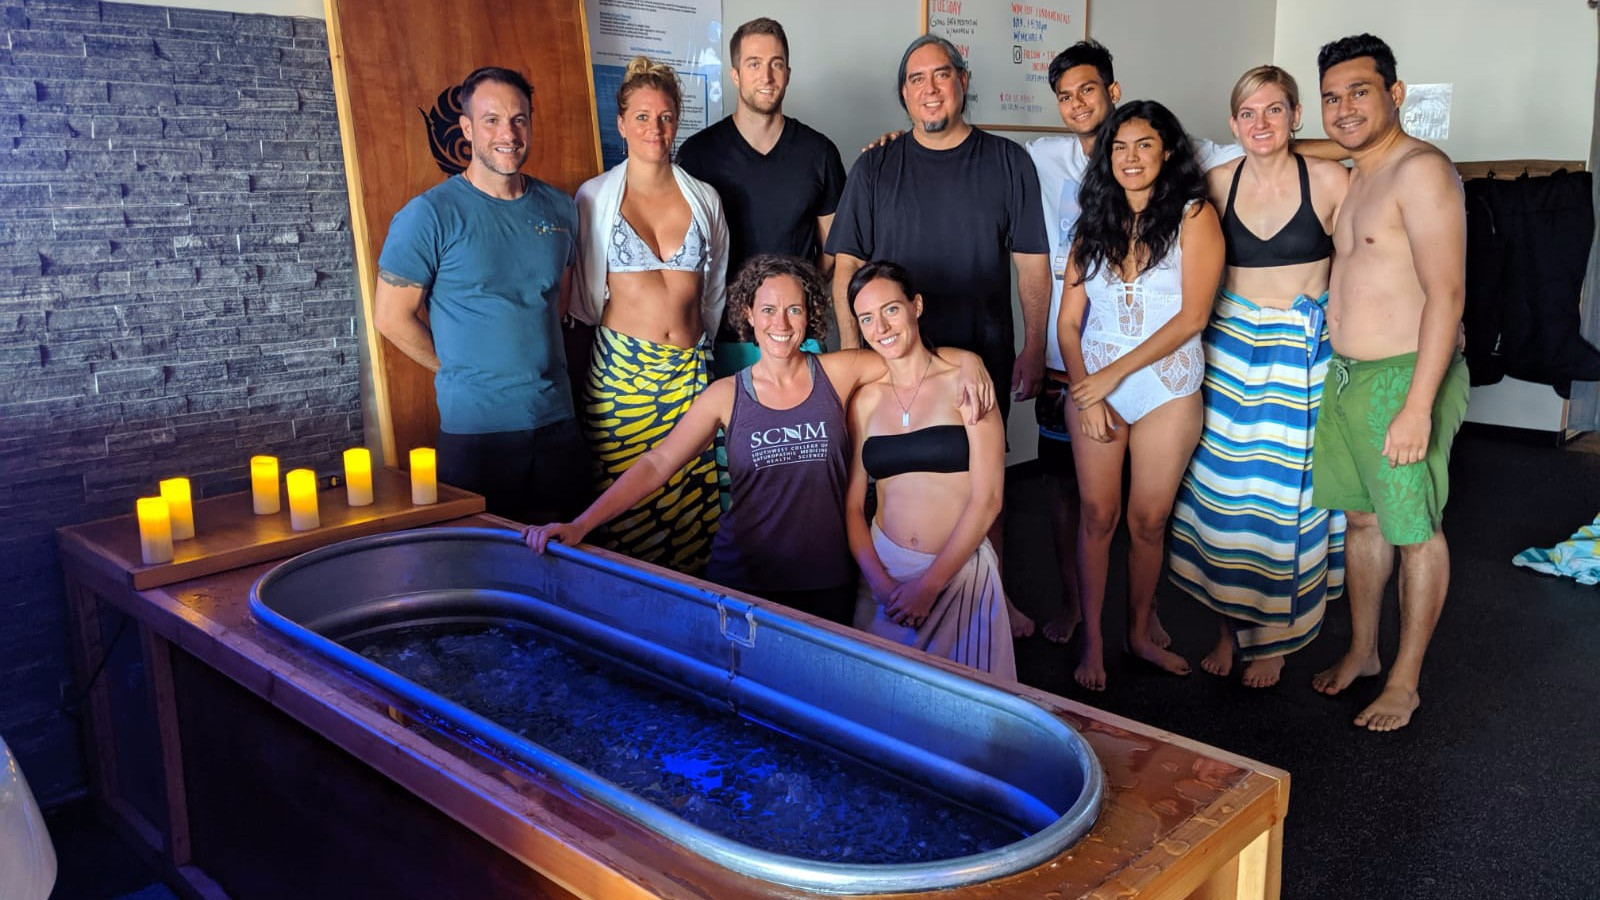 Image 1 of 11 - Experience the Wim Hof Method to get an impression of  at